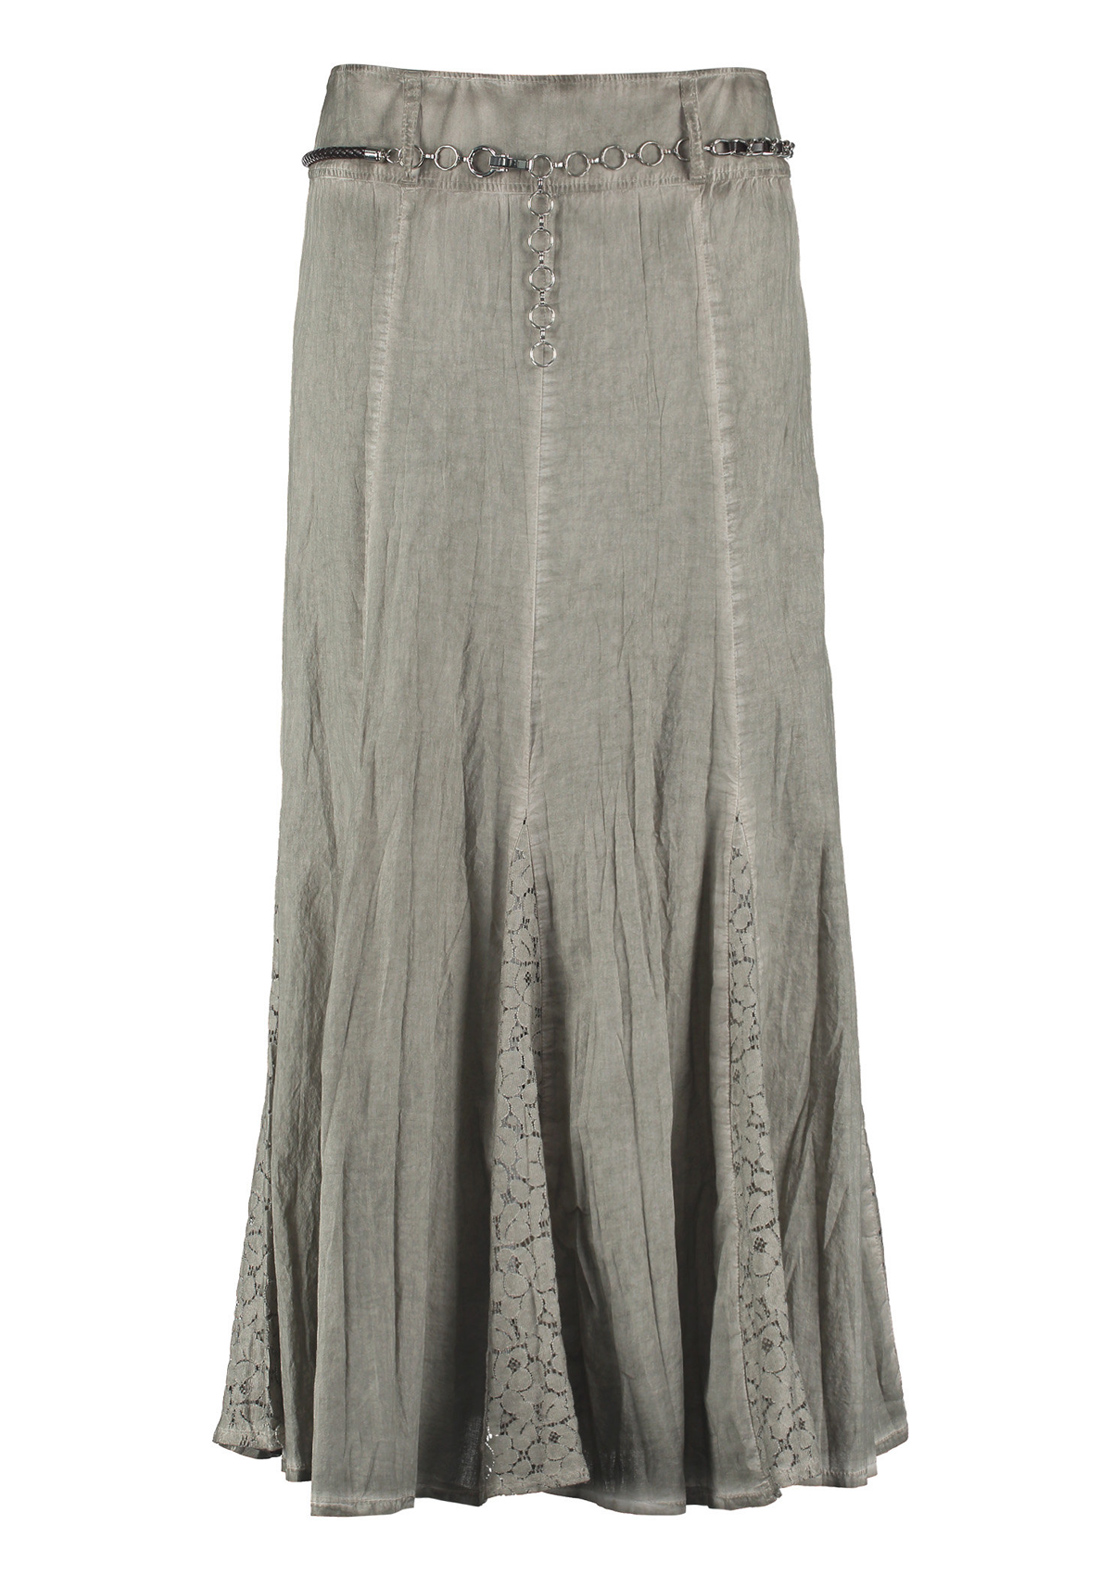 Gerry Weber A-Line Lace Trim Maxi Skirt, Olive